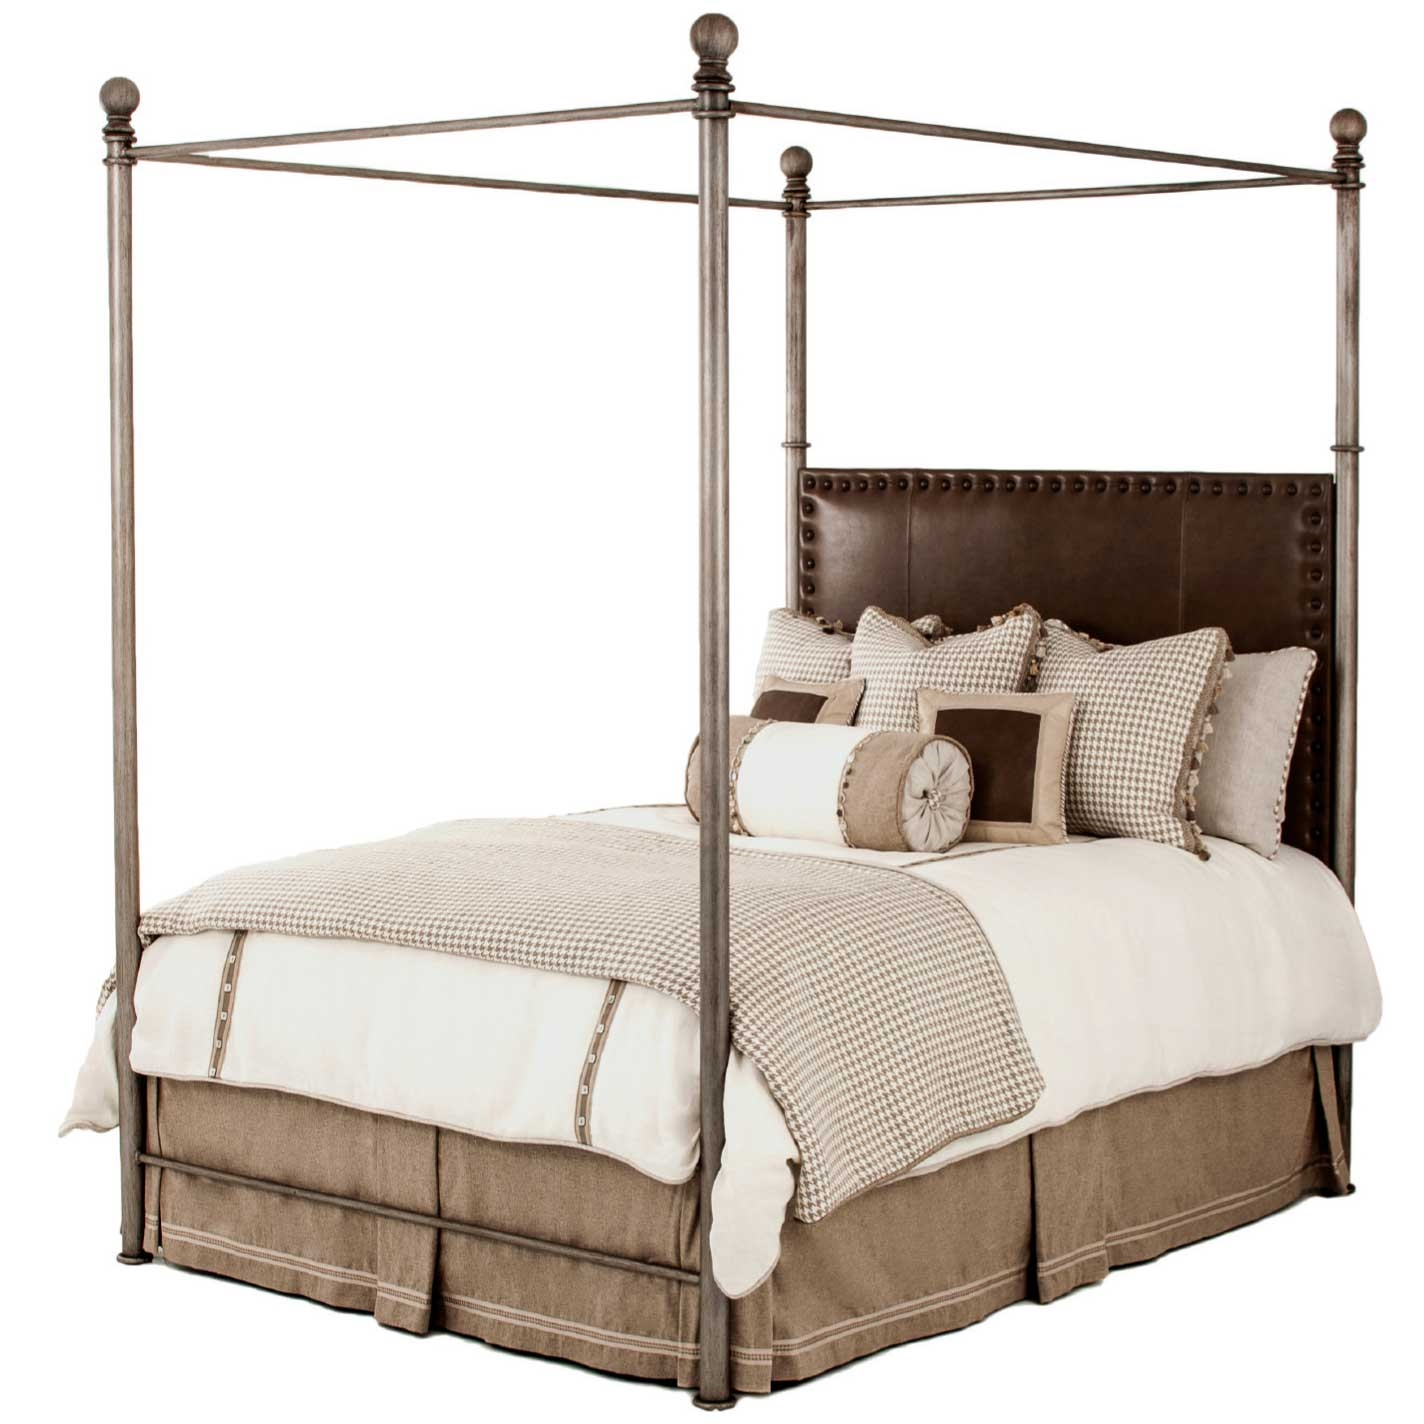 Davant iron canopy bed king and queen sizes for Iron bedroom furniture